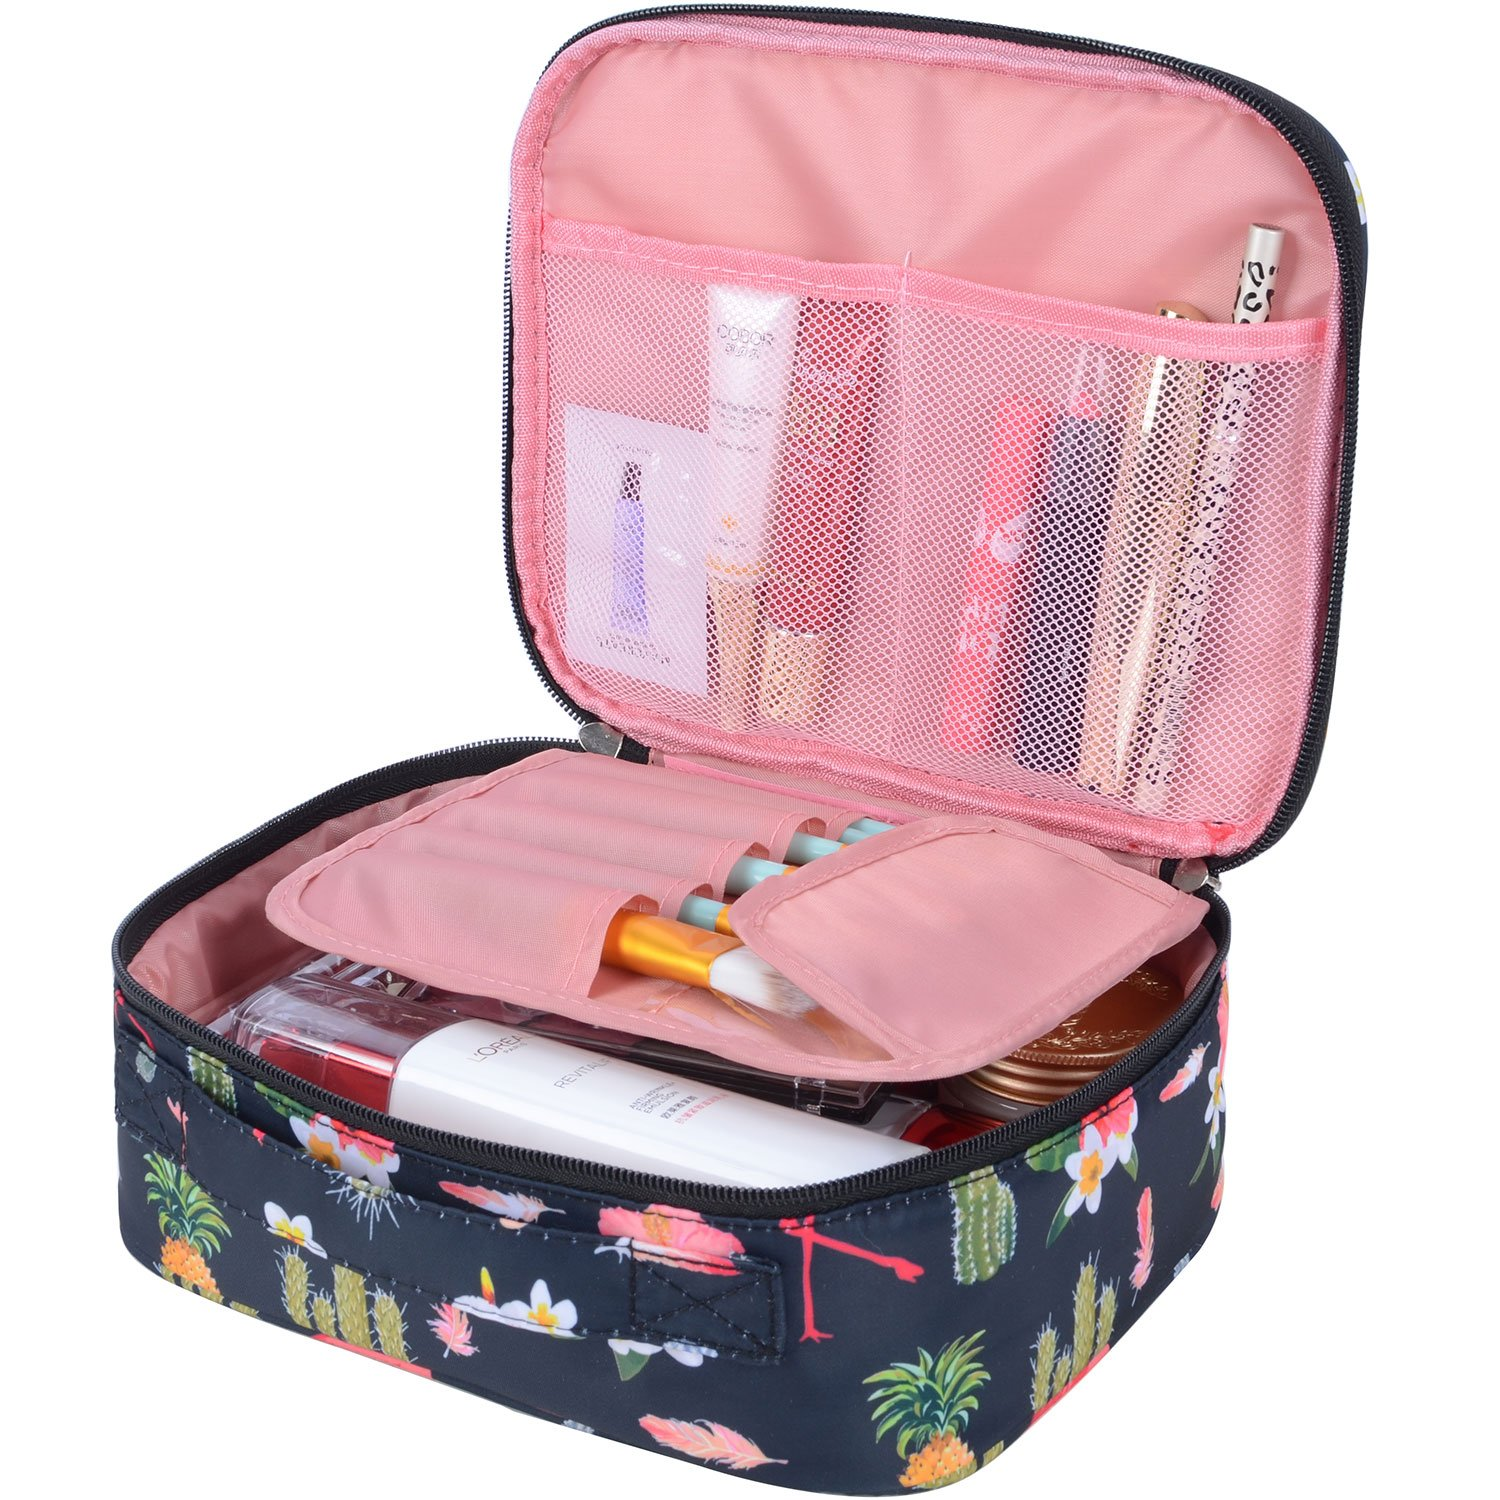 Portable Travel Makeup Cosmetic Bag Organizer Multifunction Case for Women (Color27)